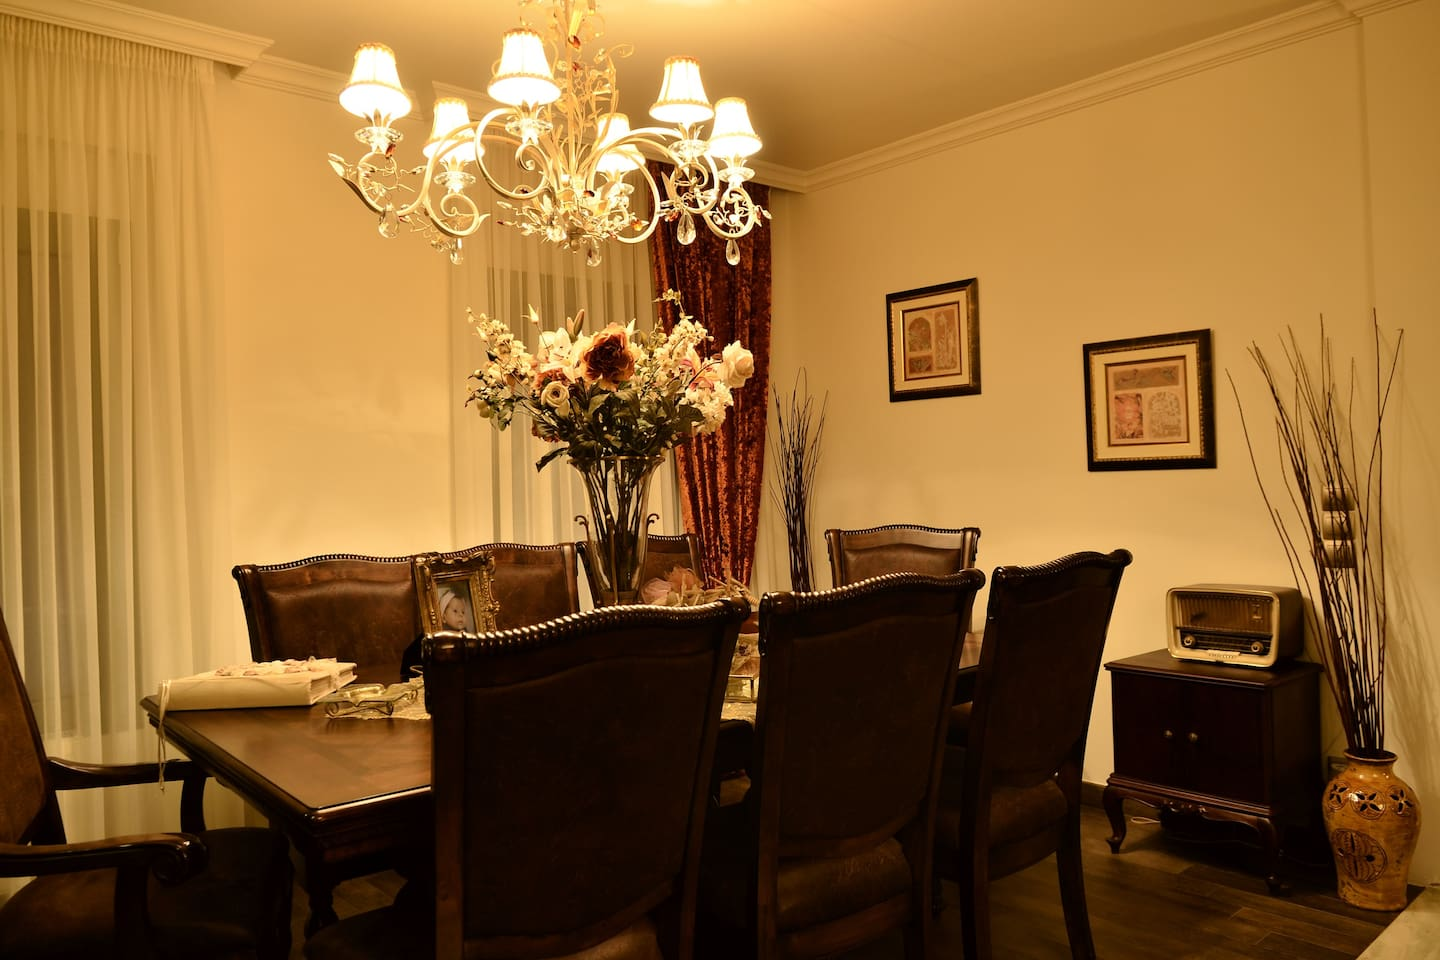 Aspect of the dinning room